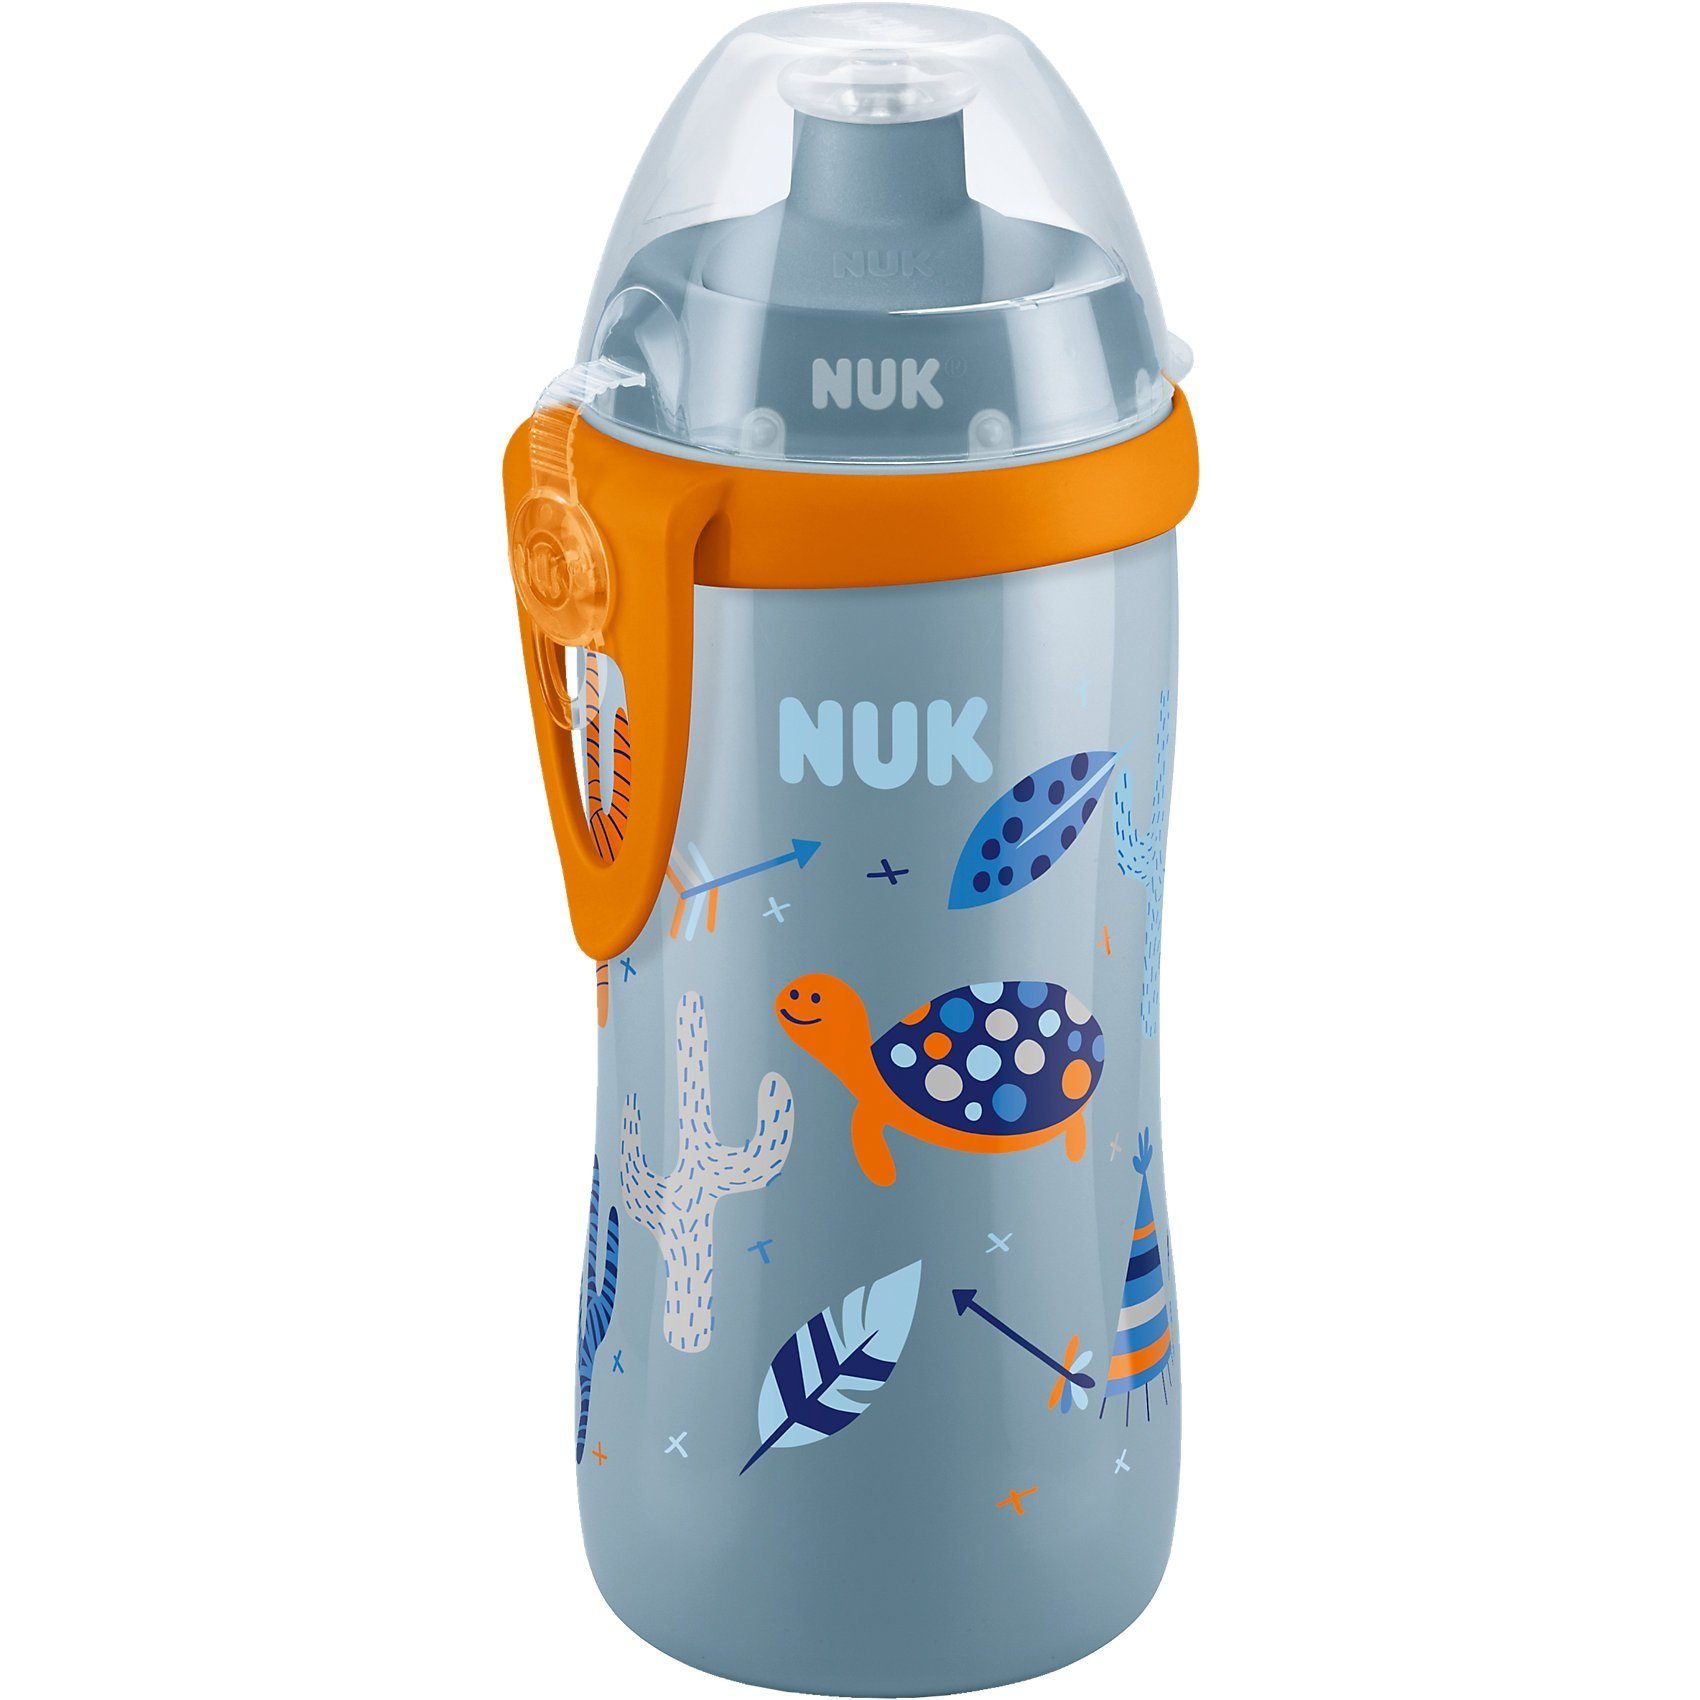 NUK Trinkflasche Junior Cup, PP, 300 ml, Push Pull Tülle, auslau